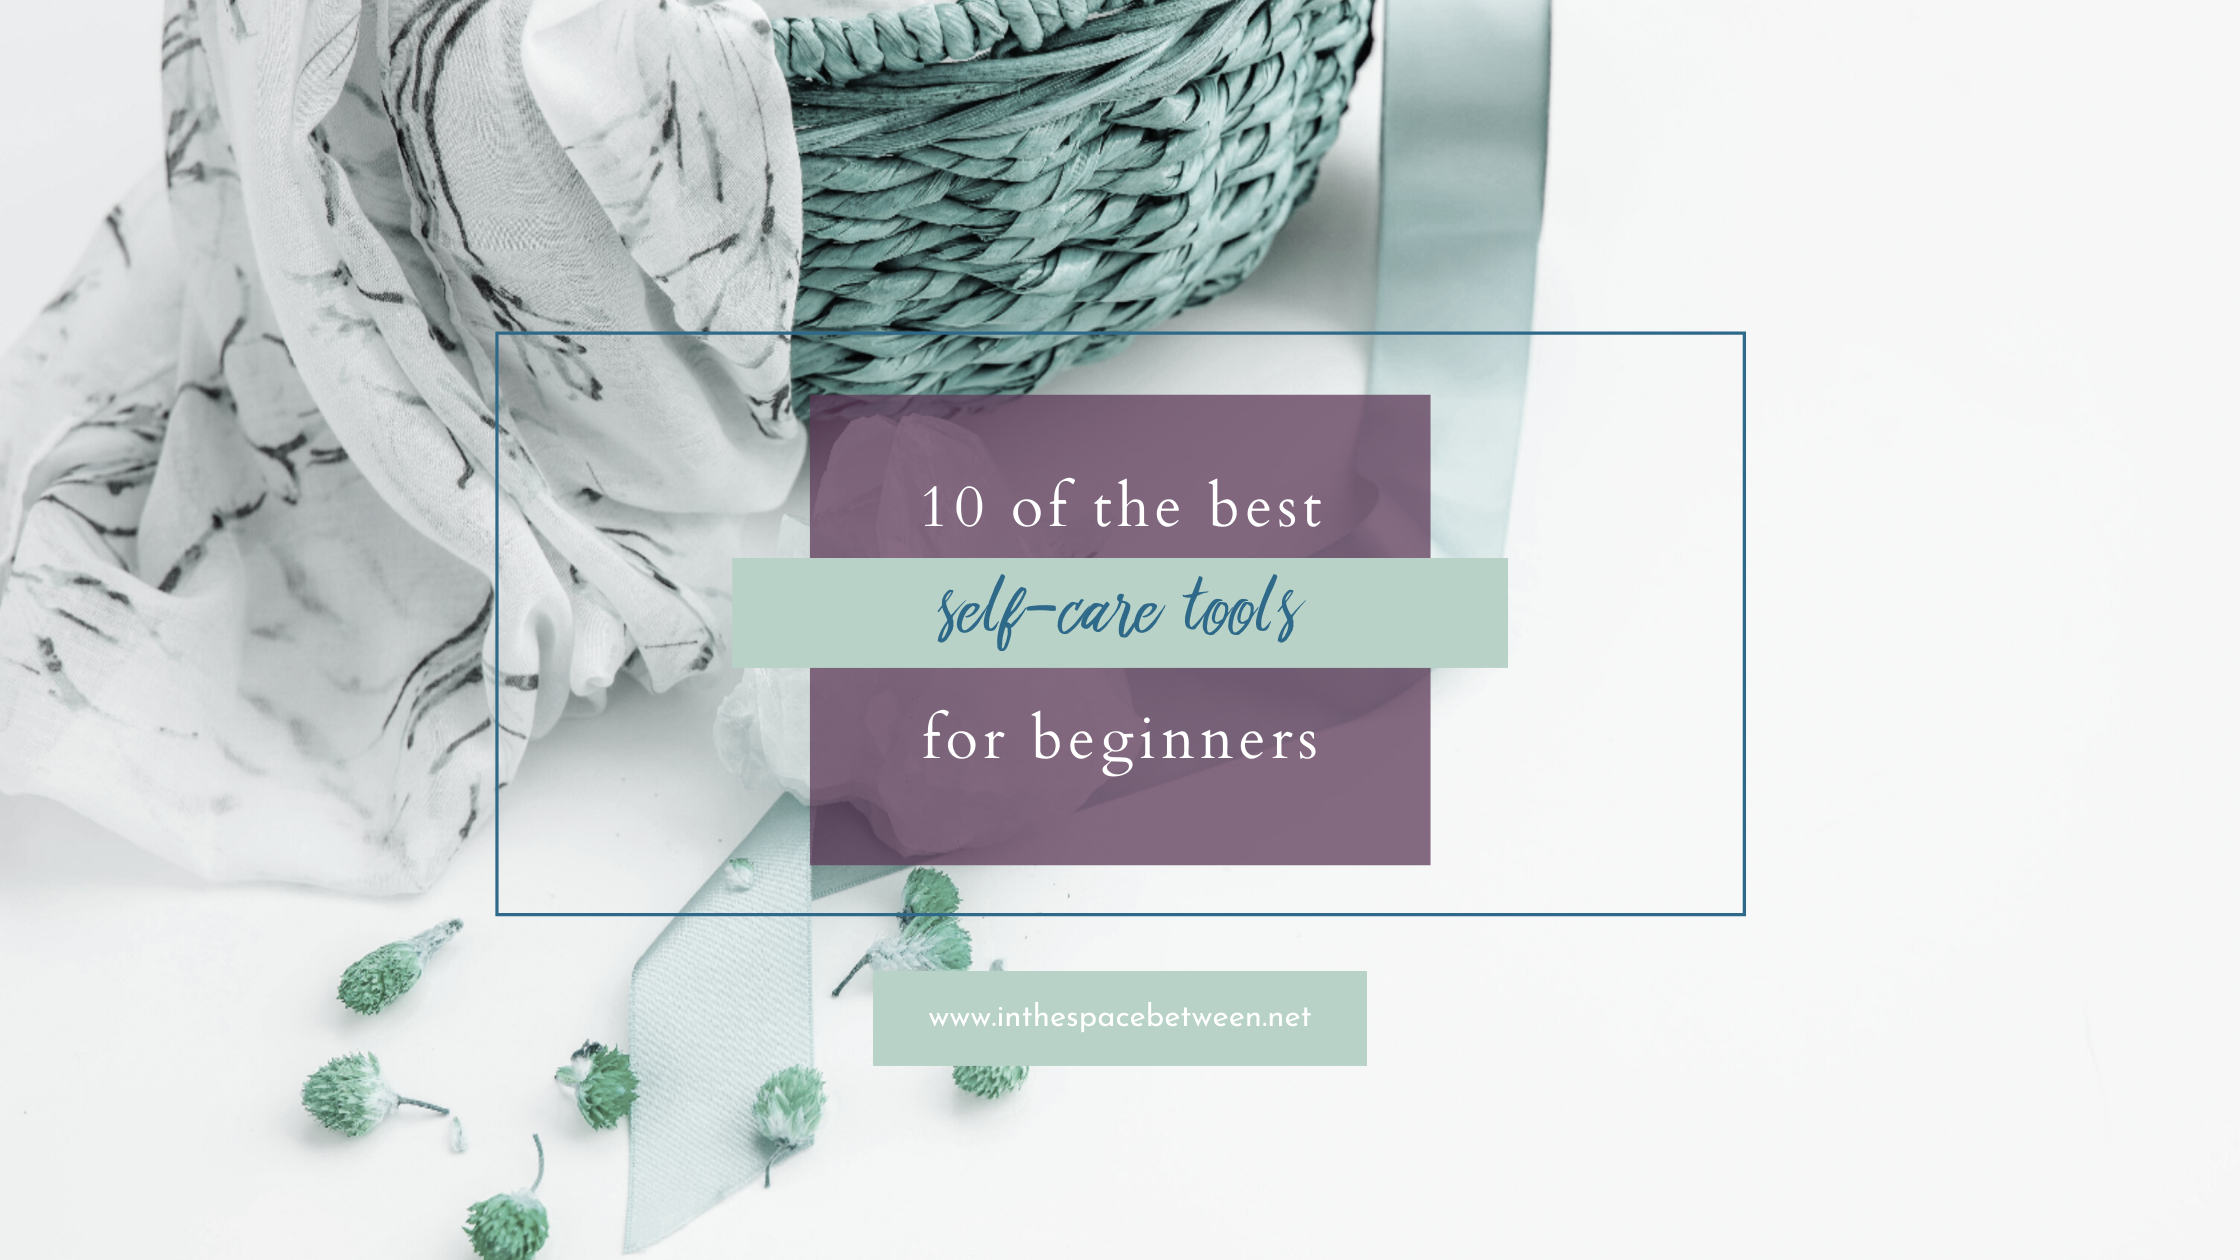 10 of the Best Self-Care Tools for Beginners